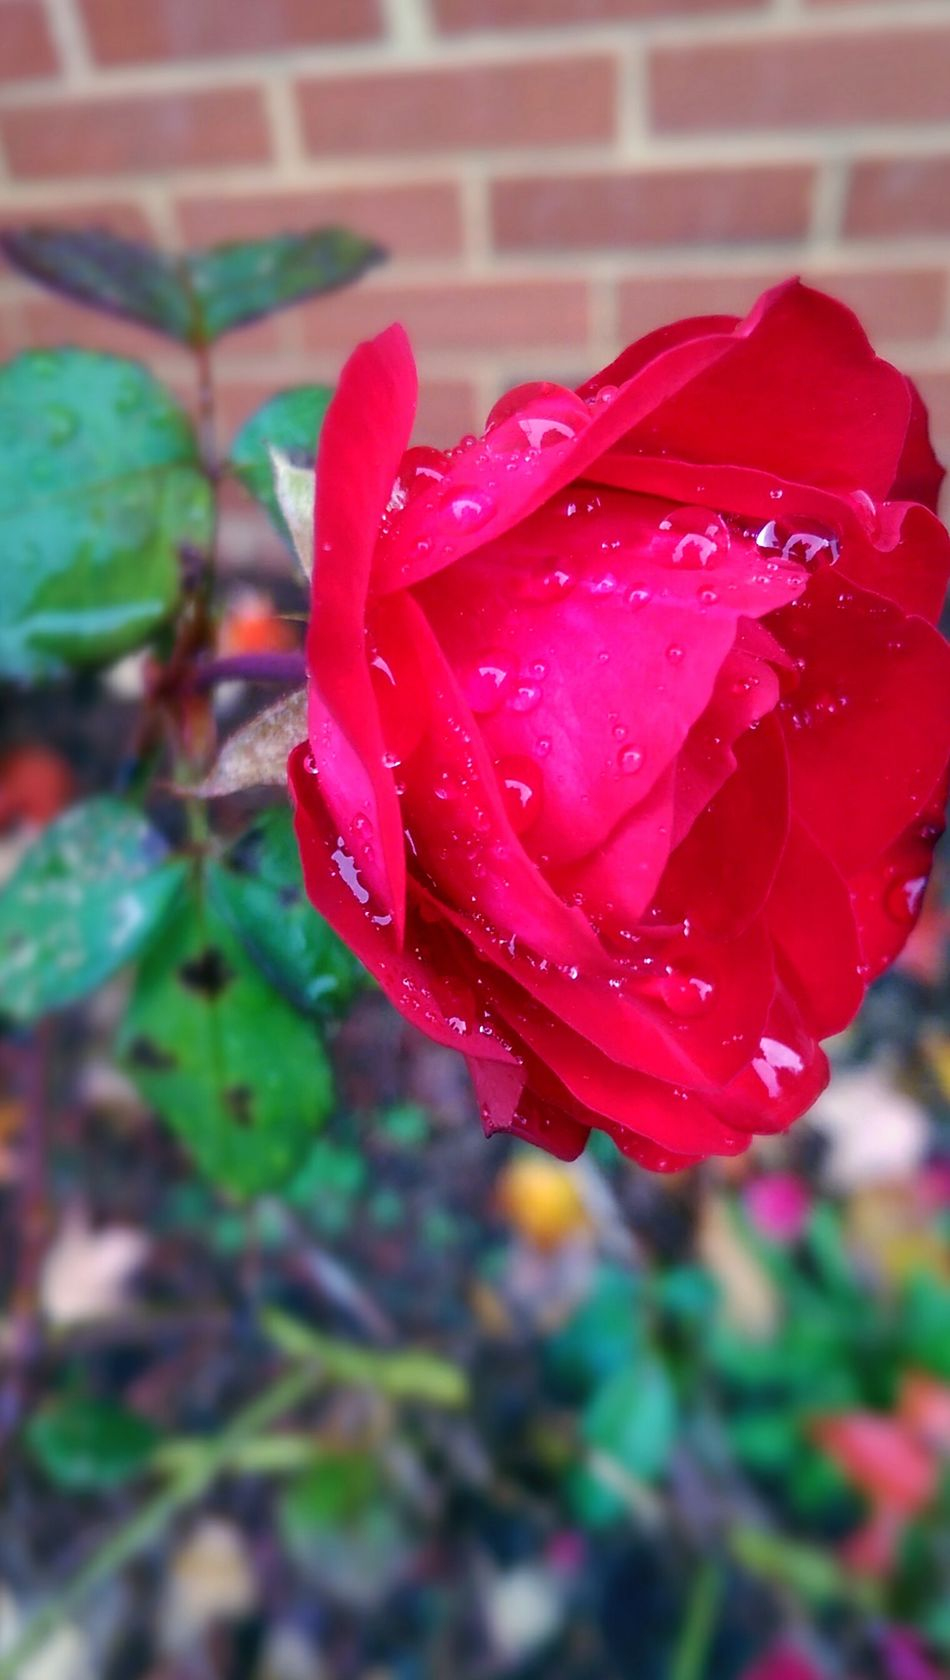 Rain Wet Roses Rose🌹 Rosé DeadRoses Nature Beautiful Beauty Red Focus Natural Flower Flowers